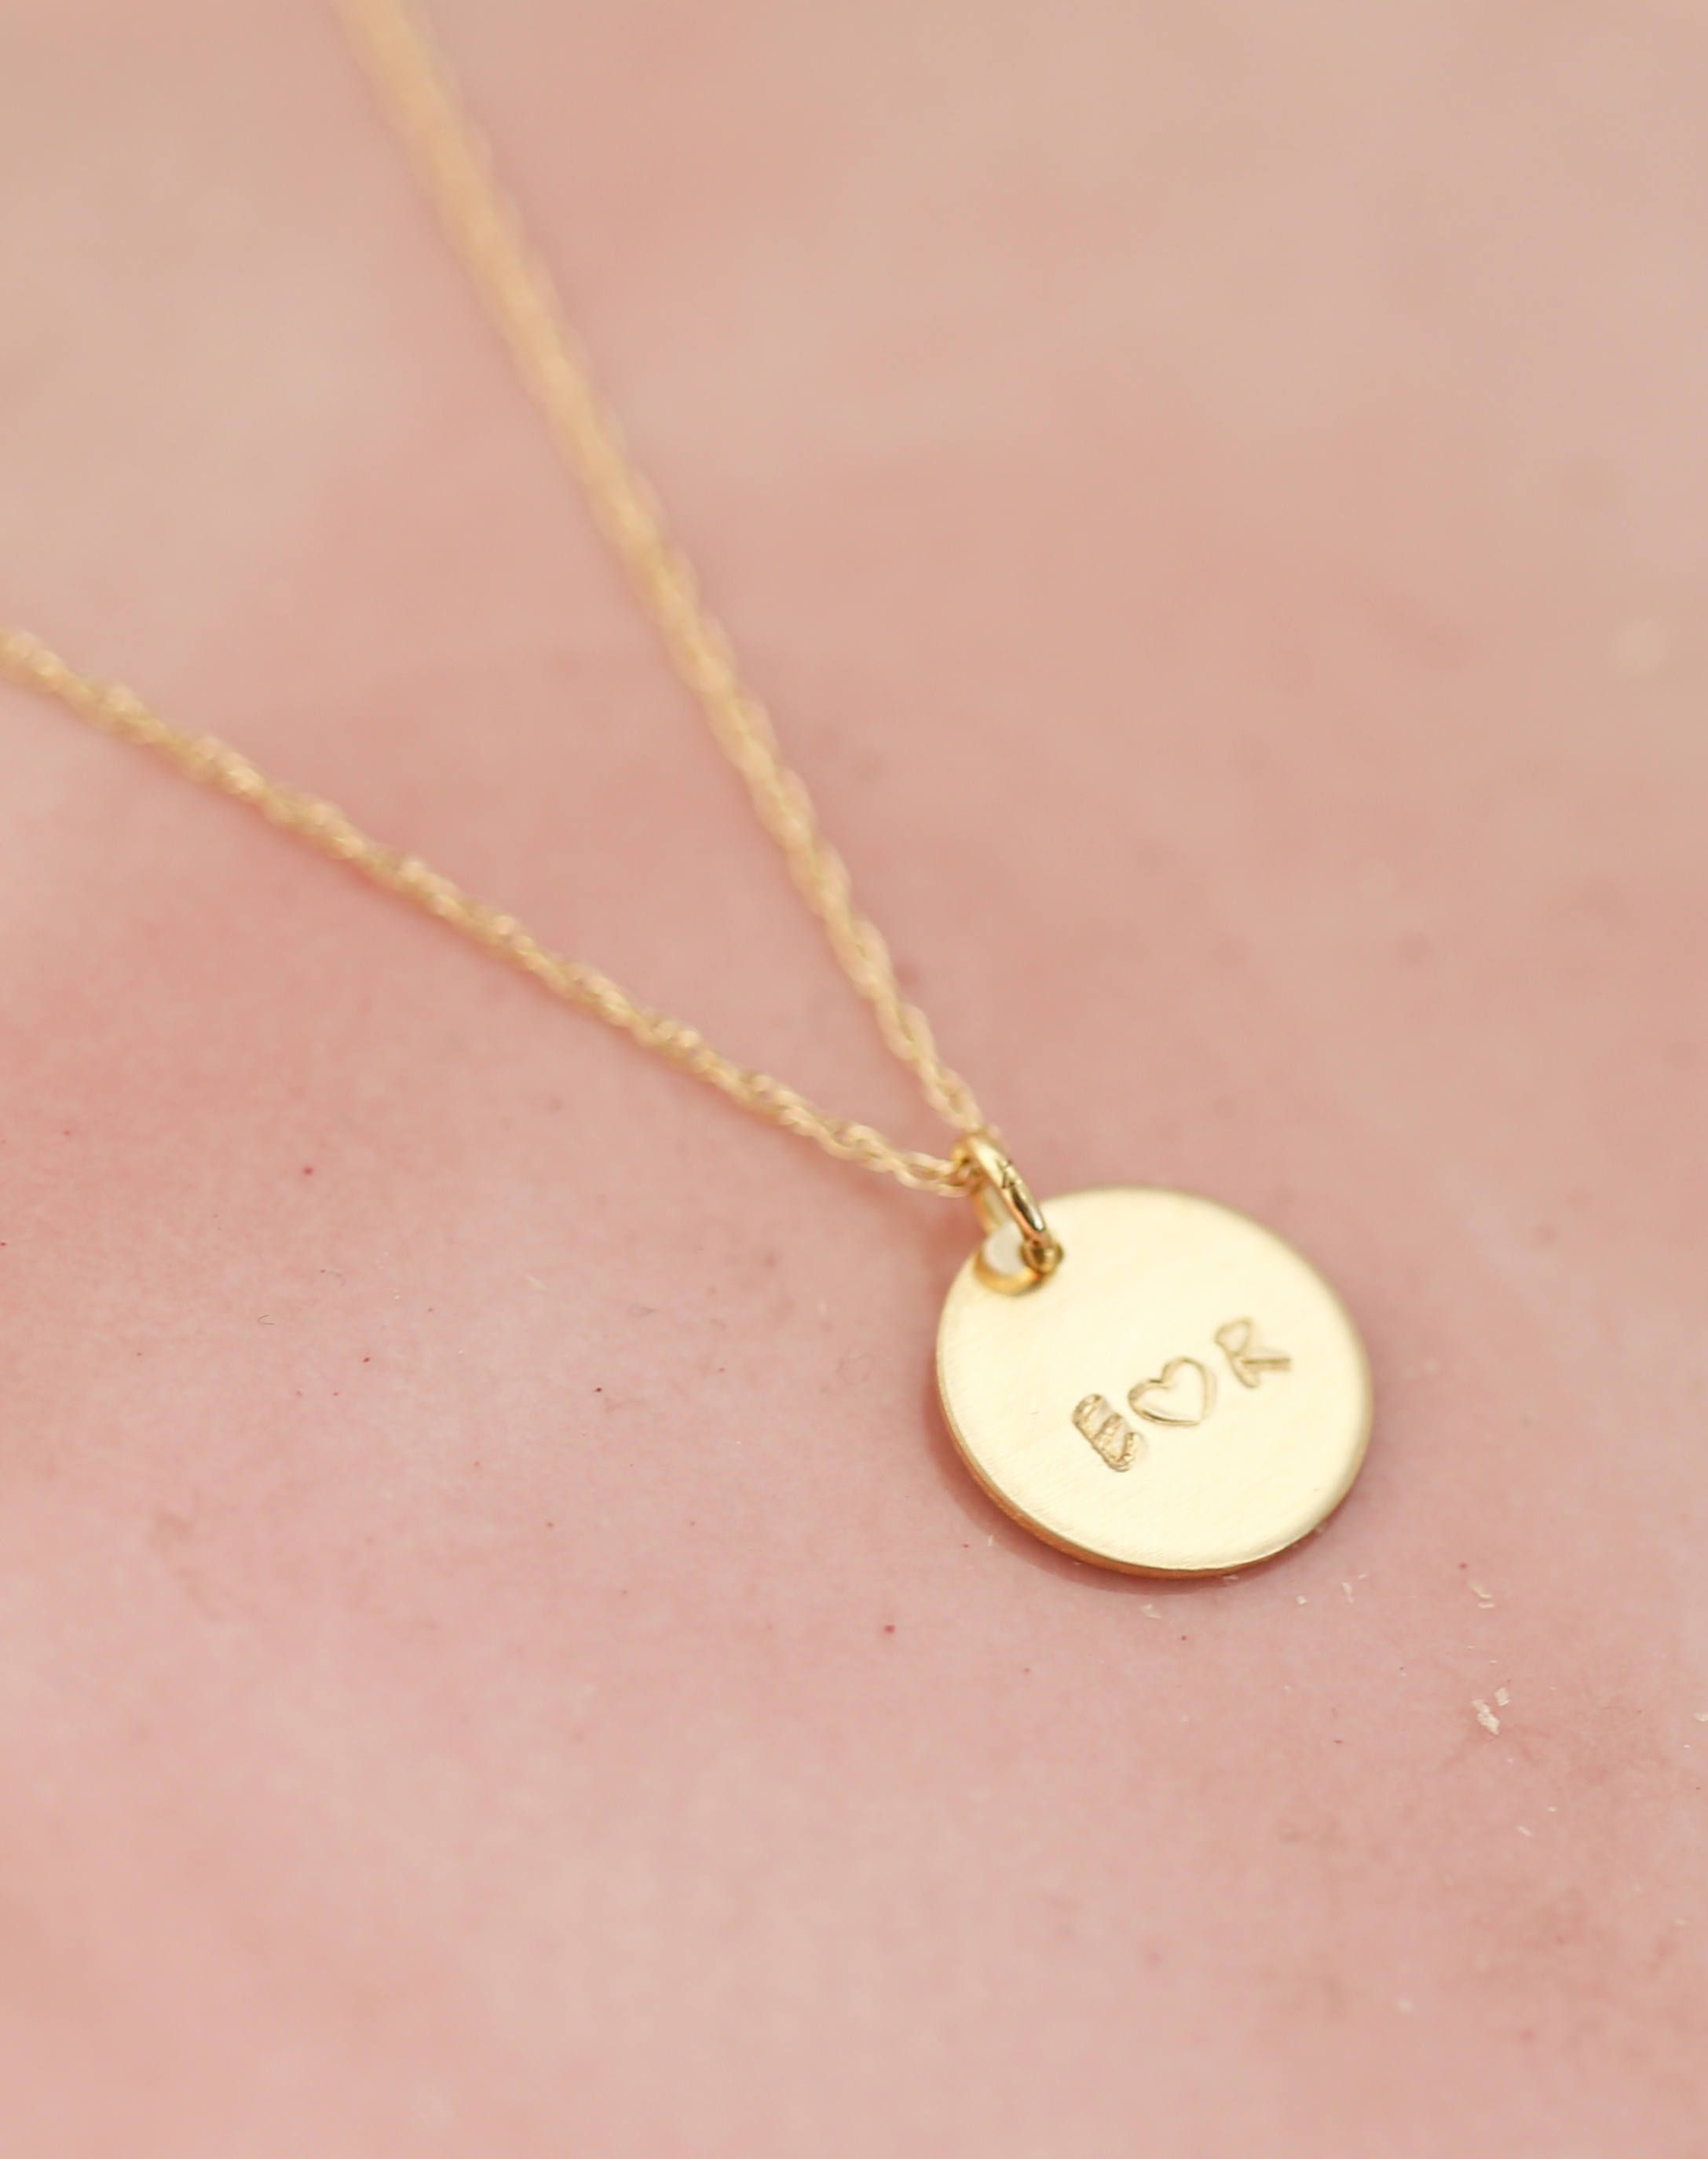 Custom Birthday Day Gift For Wife Personalized Gold Initial Etsy In 2020 Initial Necklace Gold Gold Charm Necklace Girlfriend Gifts